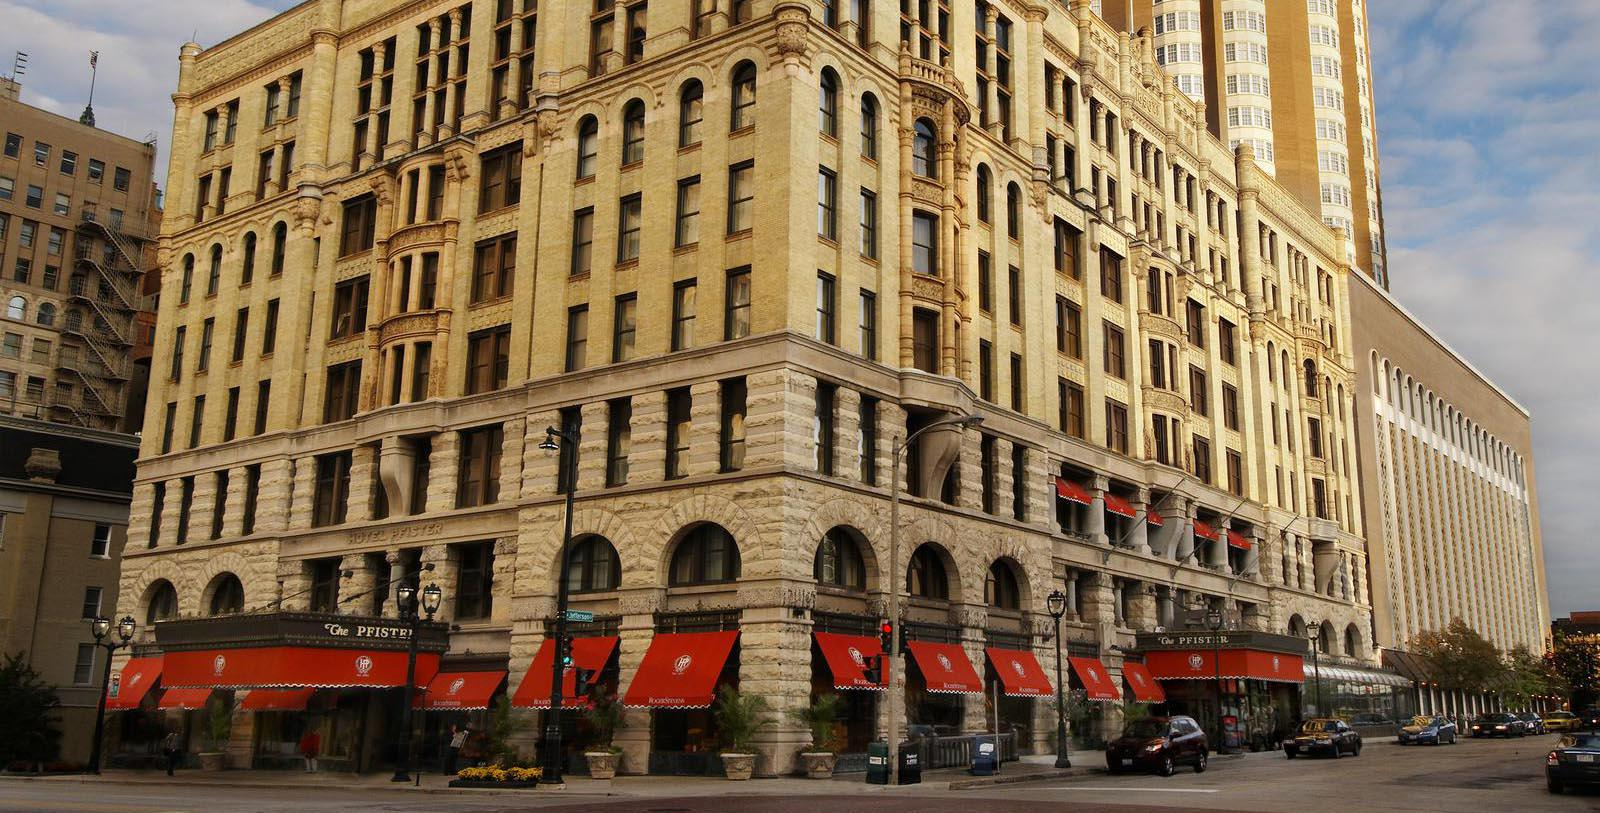 Image of Hotel Exterior The Pfister Hotel, 1893, Member of Historic Hotels of America, in Milwaukee, Wisconsin, Explore